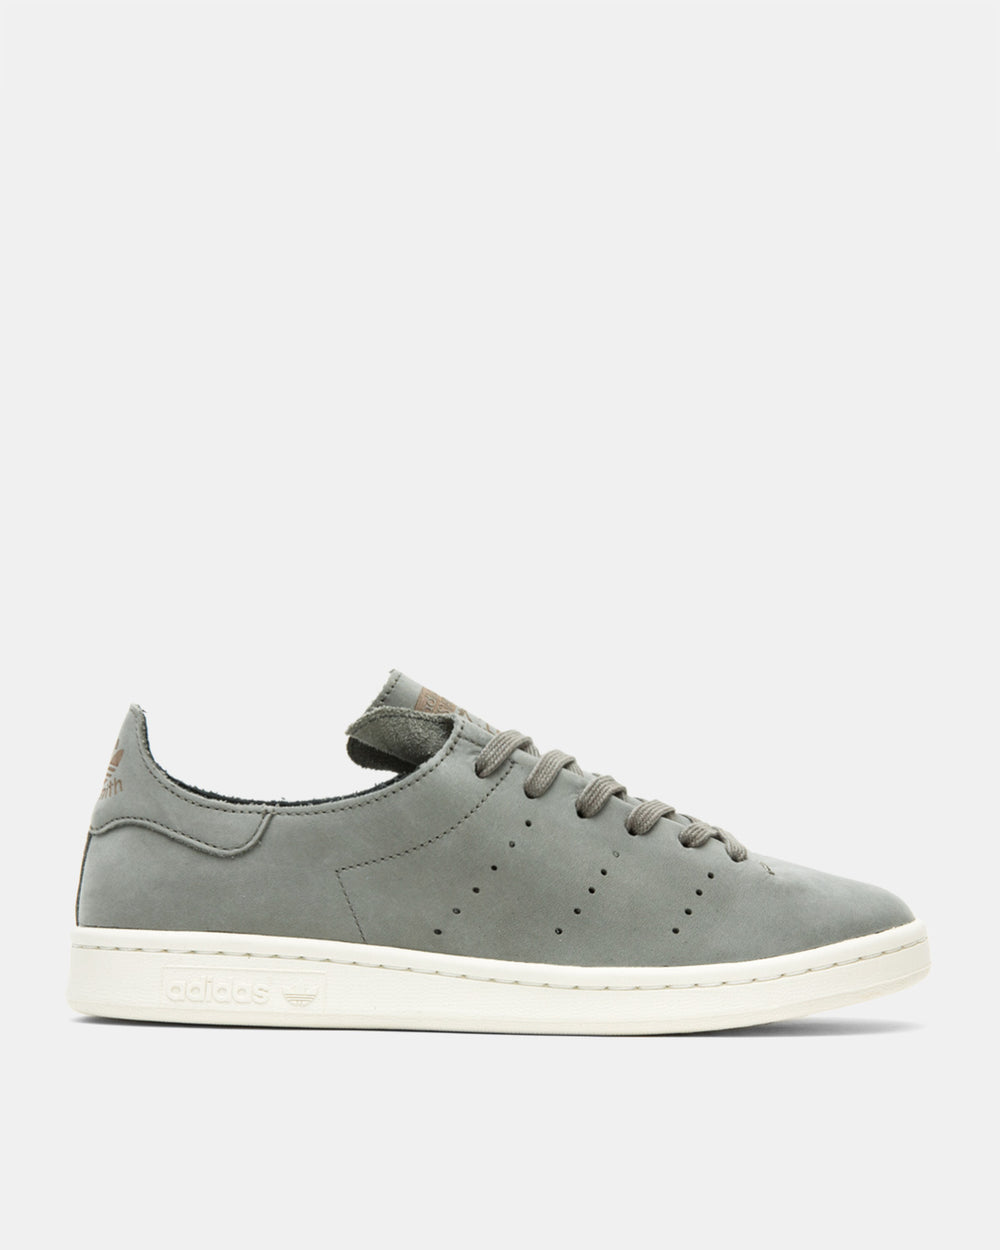 adidas - Stan Smith Leather Sock (Trace Cargo | Off White)